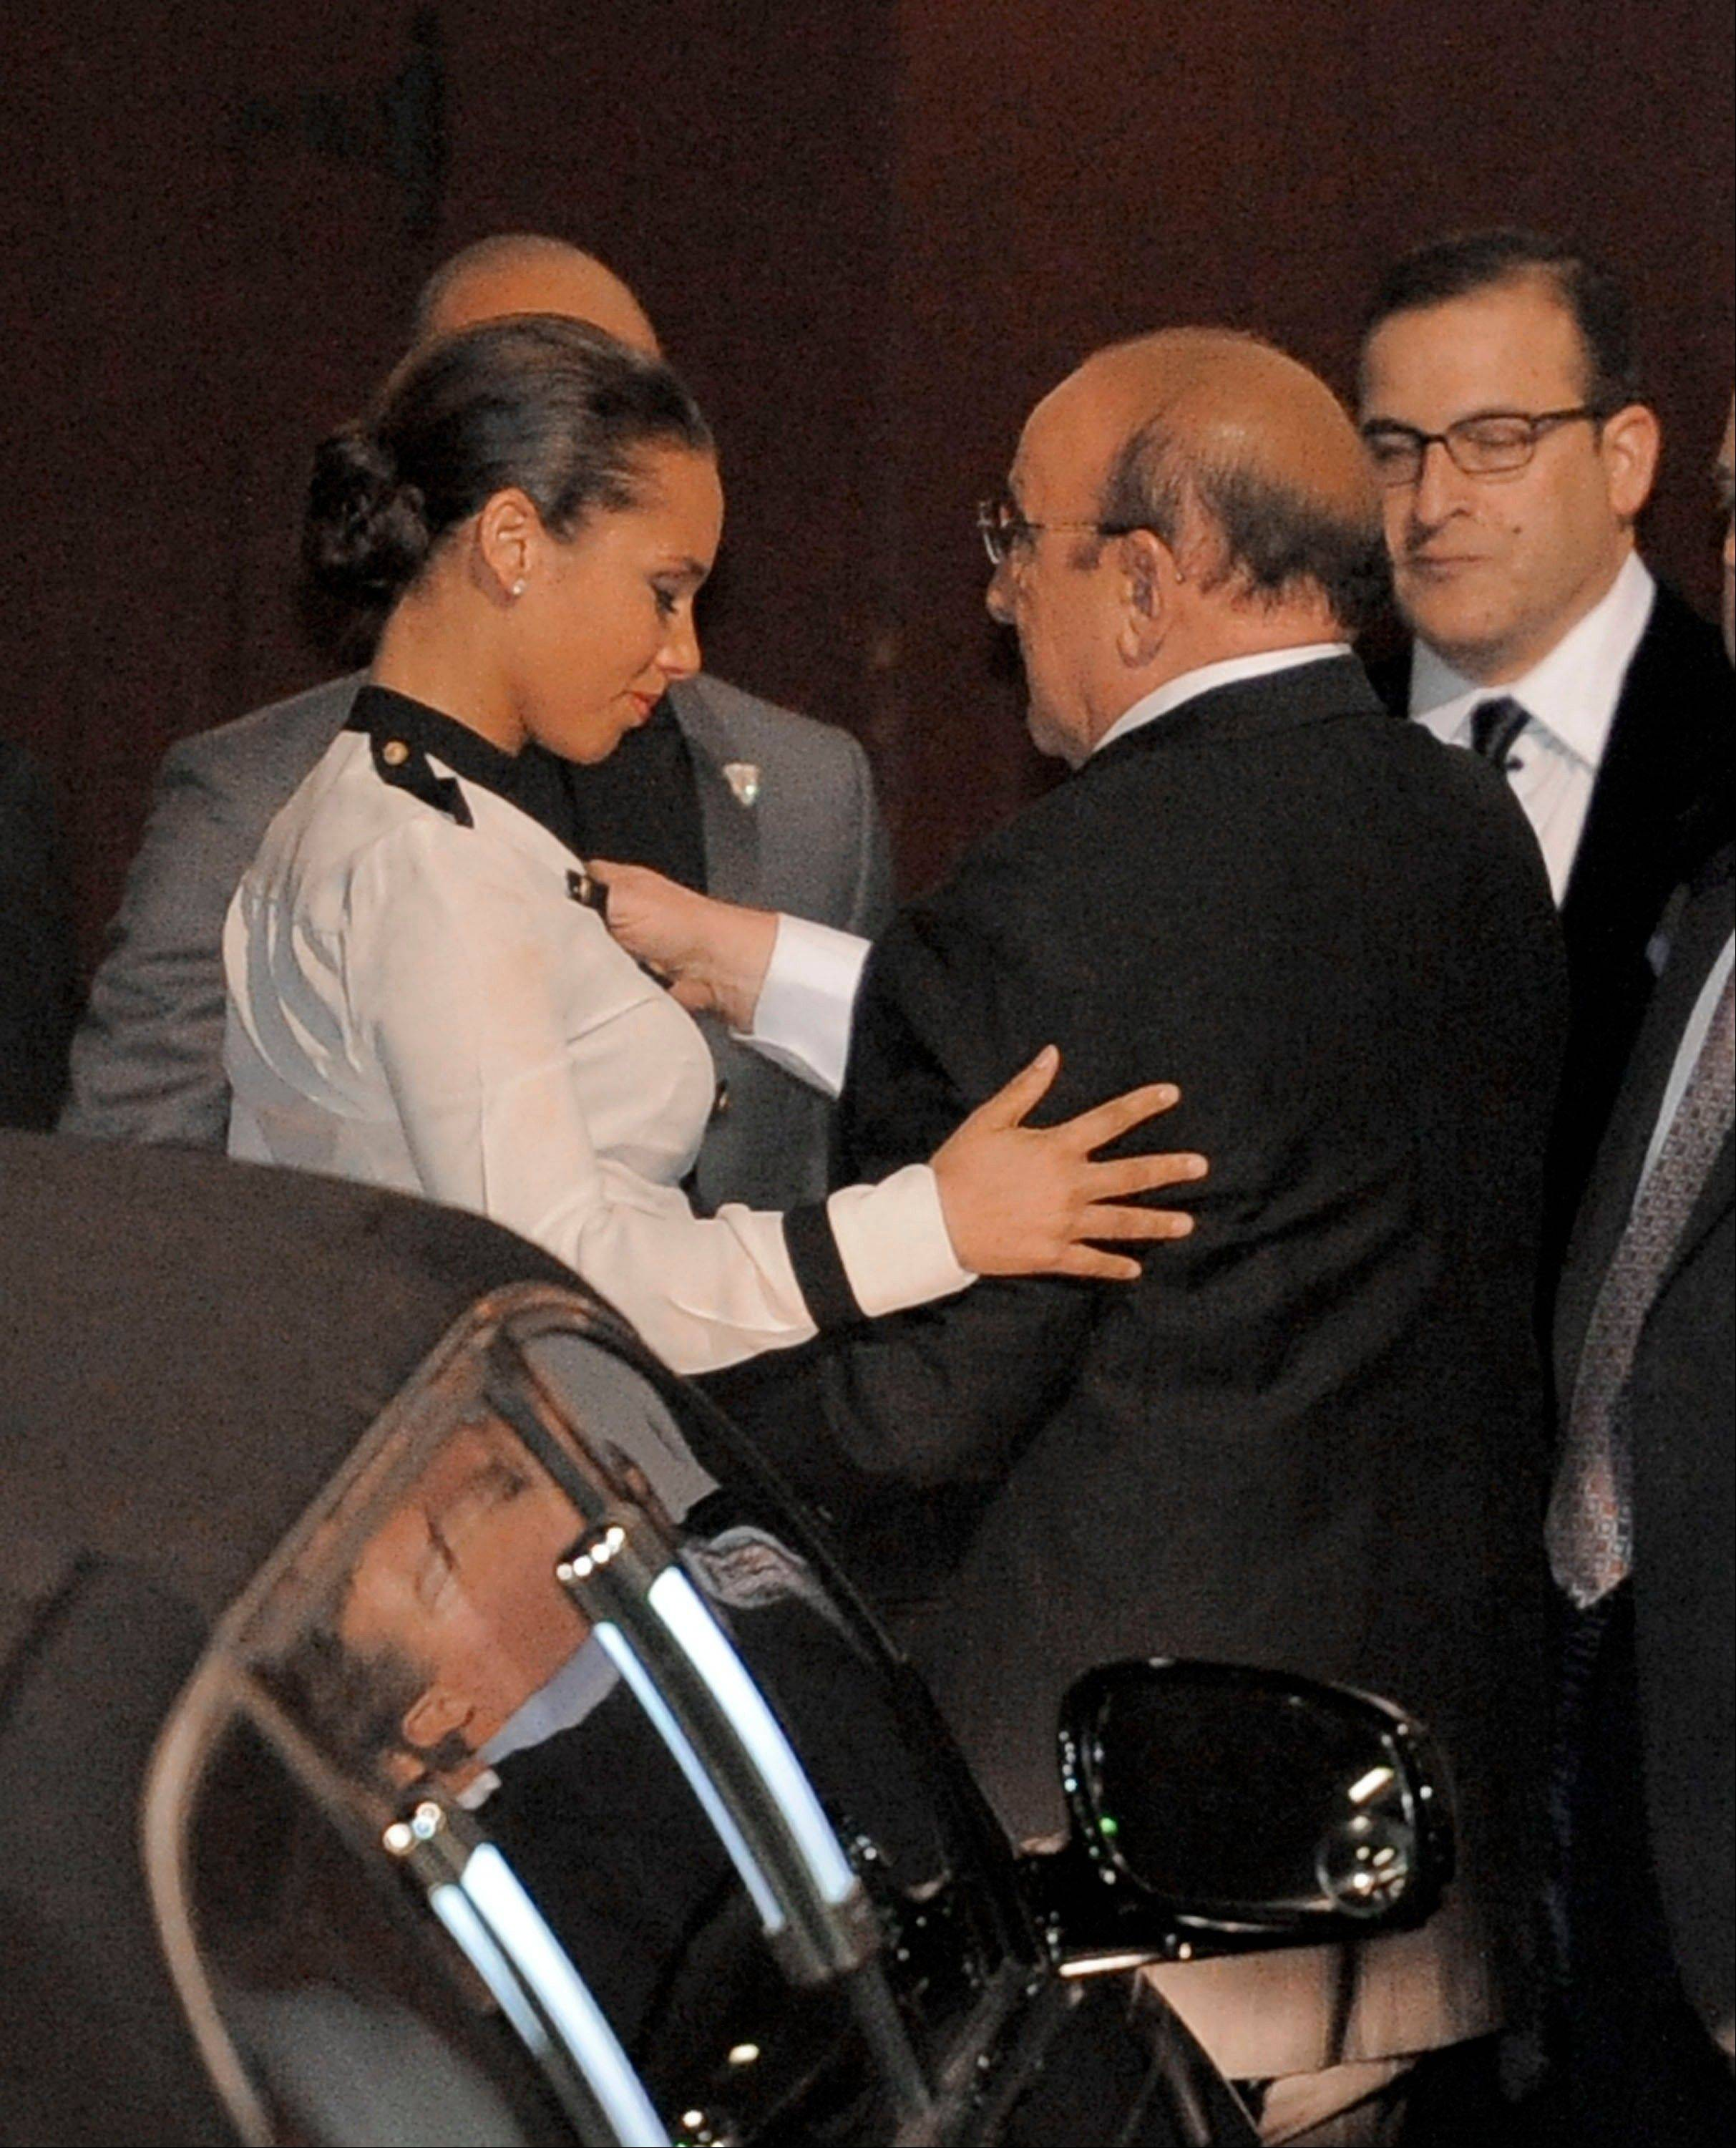 Alicia Keys, left, hugs Clive Davis at the loading dock Saturday outside the Beverly Hilton Hotel Saturday in Beverly Hills, Calif. Whitney Houston, who ruled as pop music's queen until her majestic voice and regal image were ravaged by drug use, erratic behavior and a tumultuous marriage to singer Bobby Brown, died Saturday. She was 48.